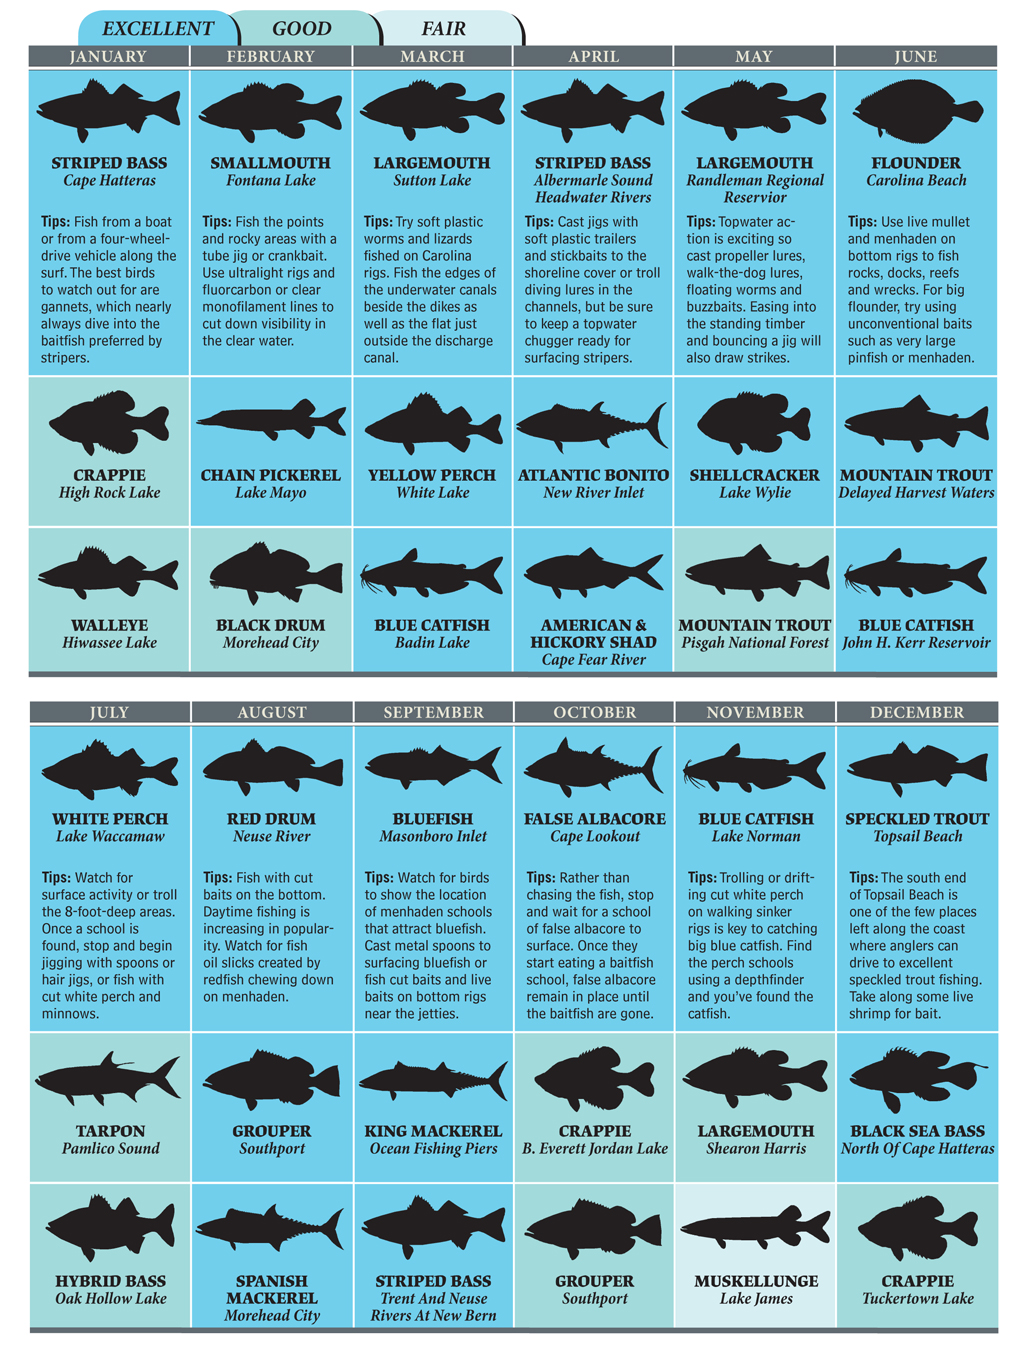 Top Spots for North Carolina Fishing in 2012